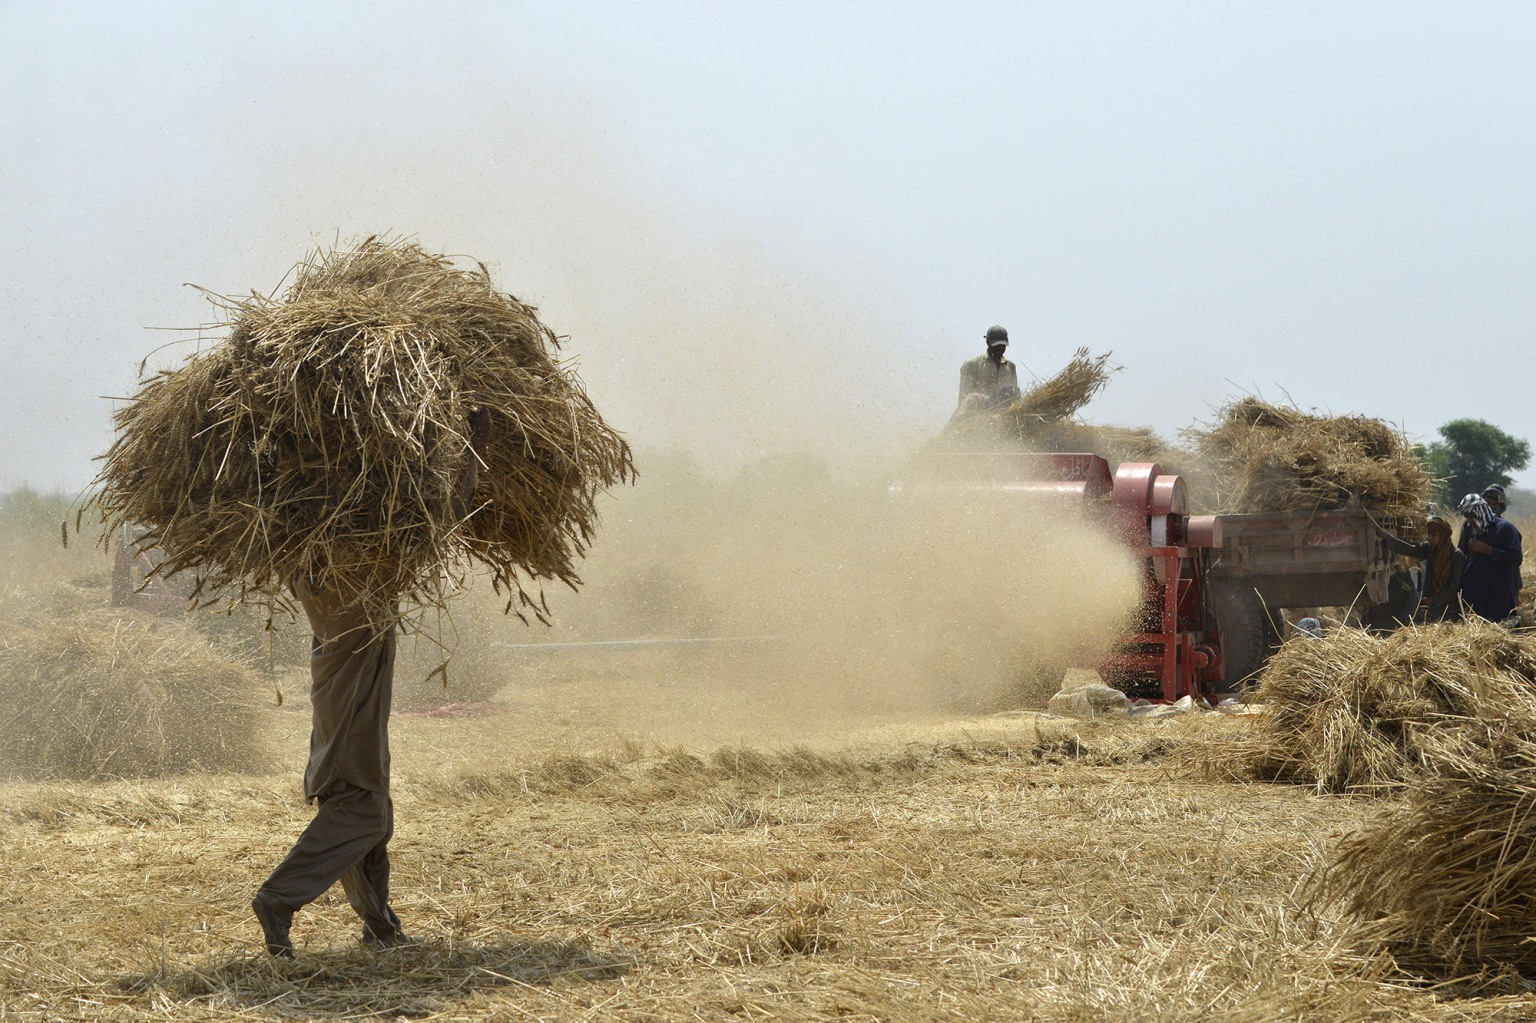 Pakistani farmers use a threshing machine to refine wheat during harvesting on the outskirts of Lahore on April 25. ARIF ALI/AFP/Getty Images